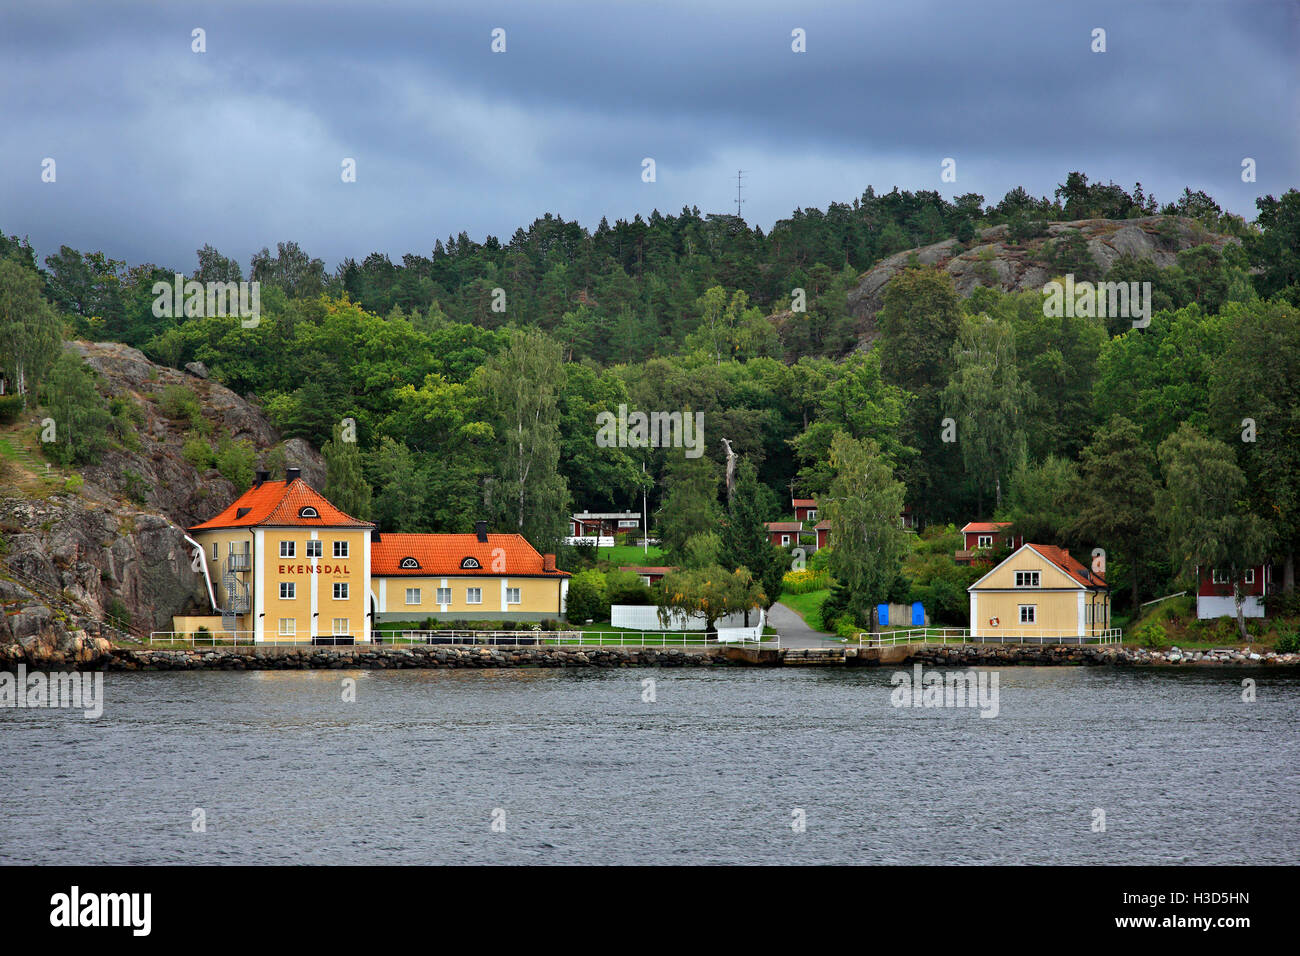 The Anna Johansson - Visborgs holiday cottages in the archipelago of Stockholm, Sweden. - Stock Image